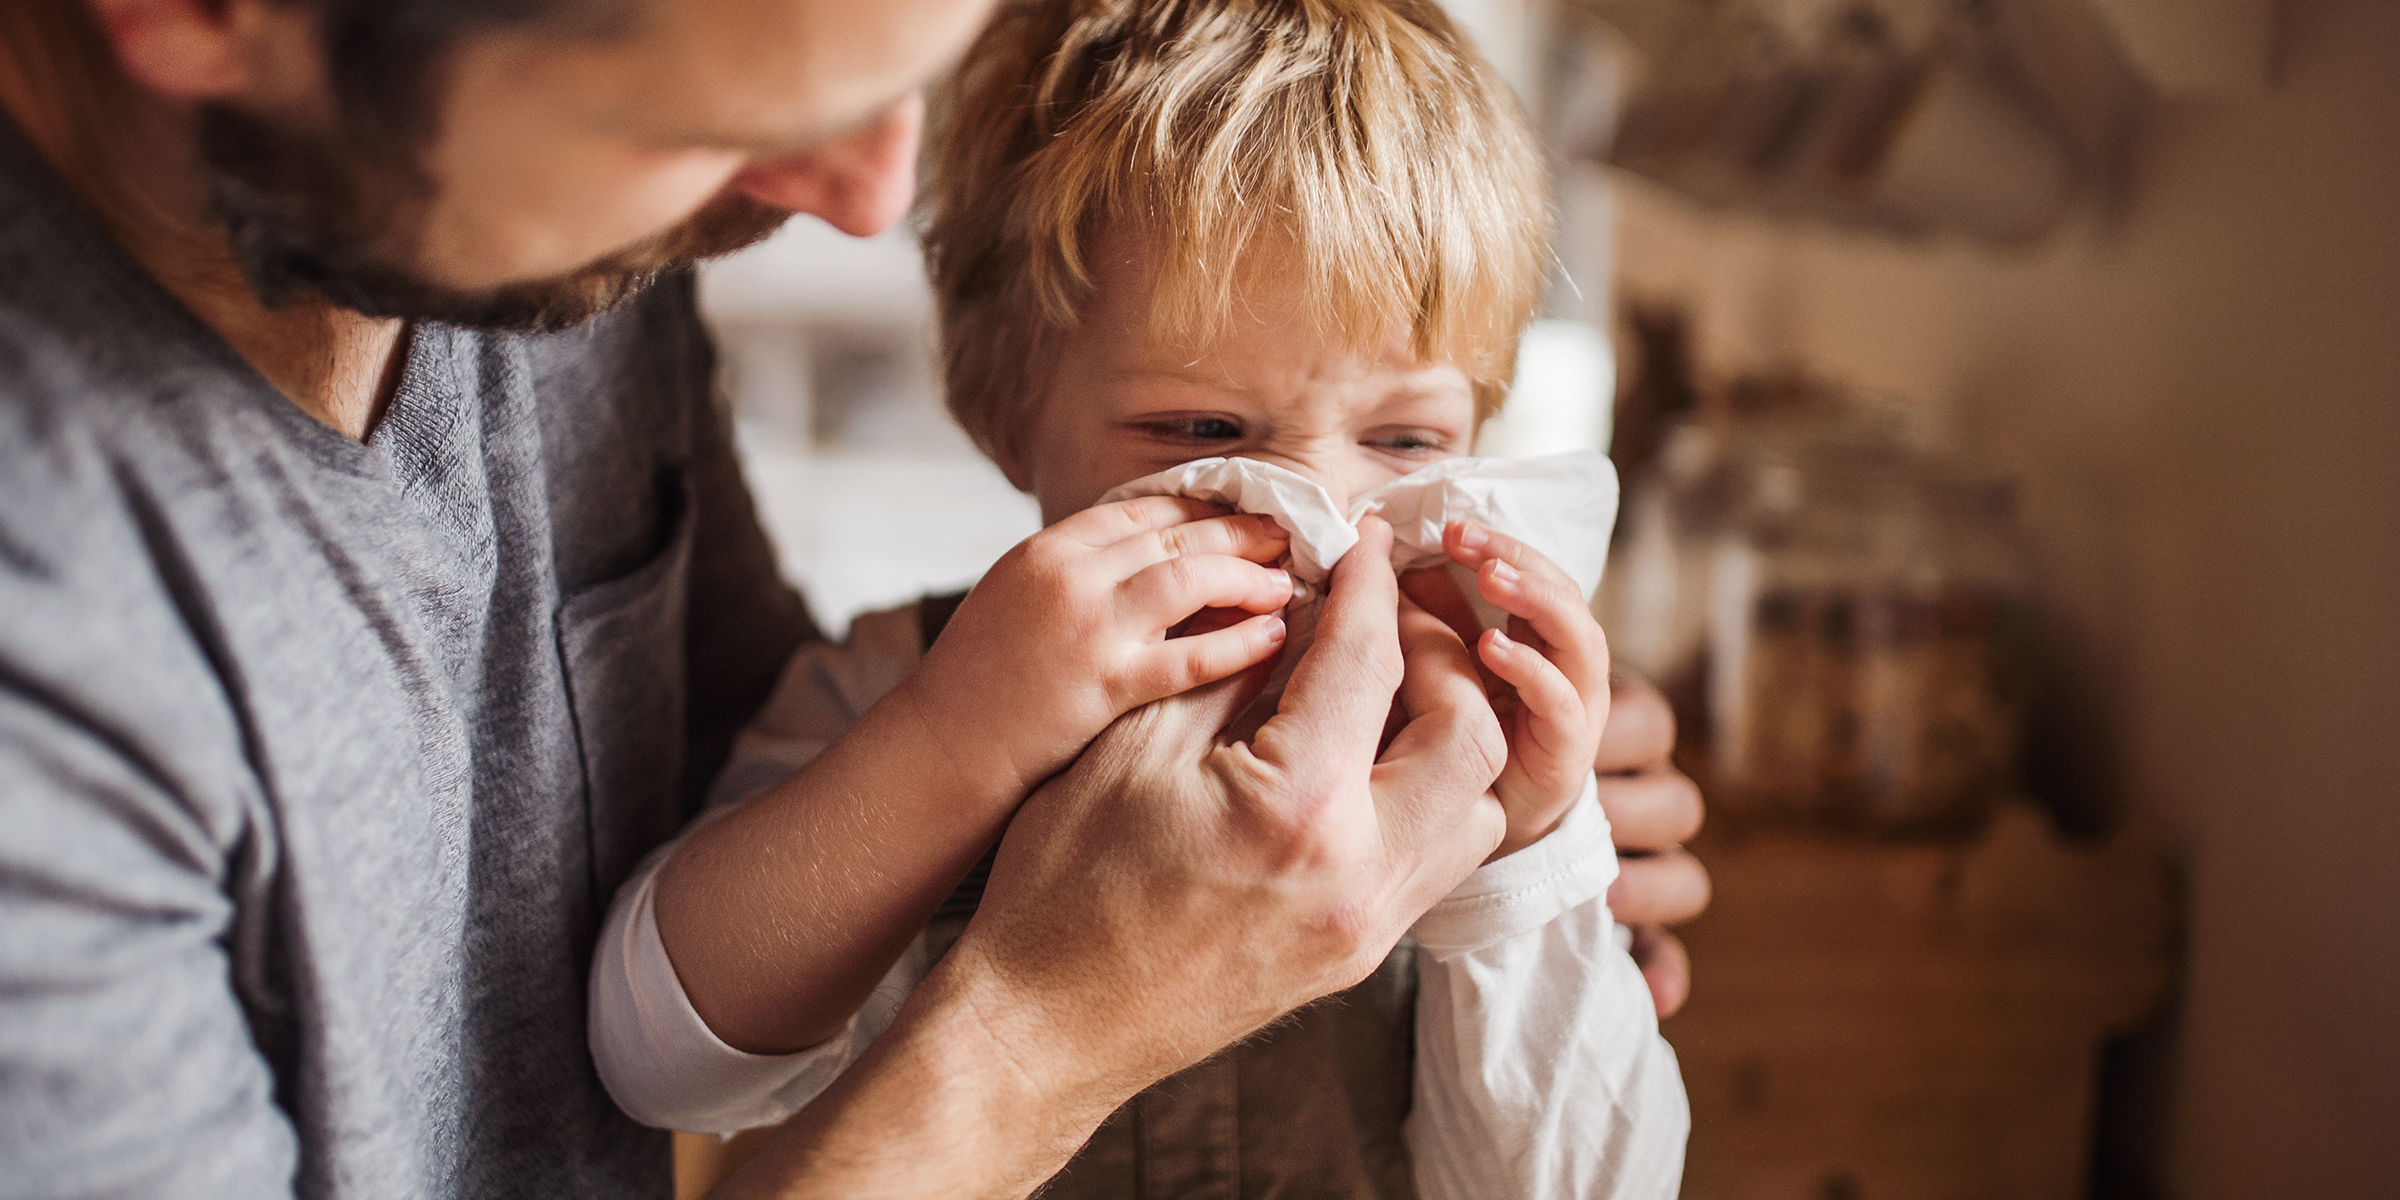 How to stop coughing: 15 home cough remedies for kids